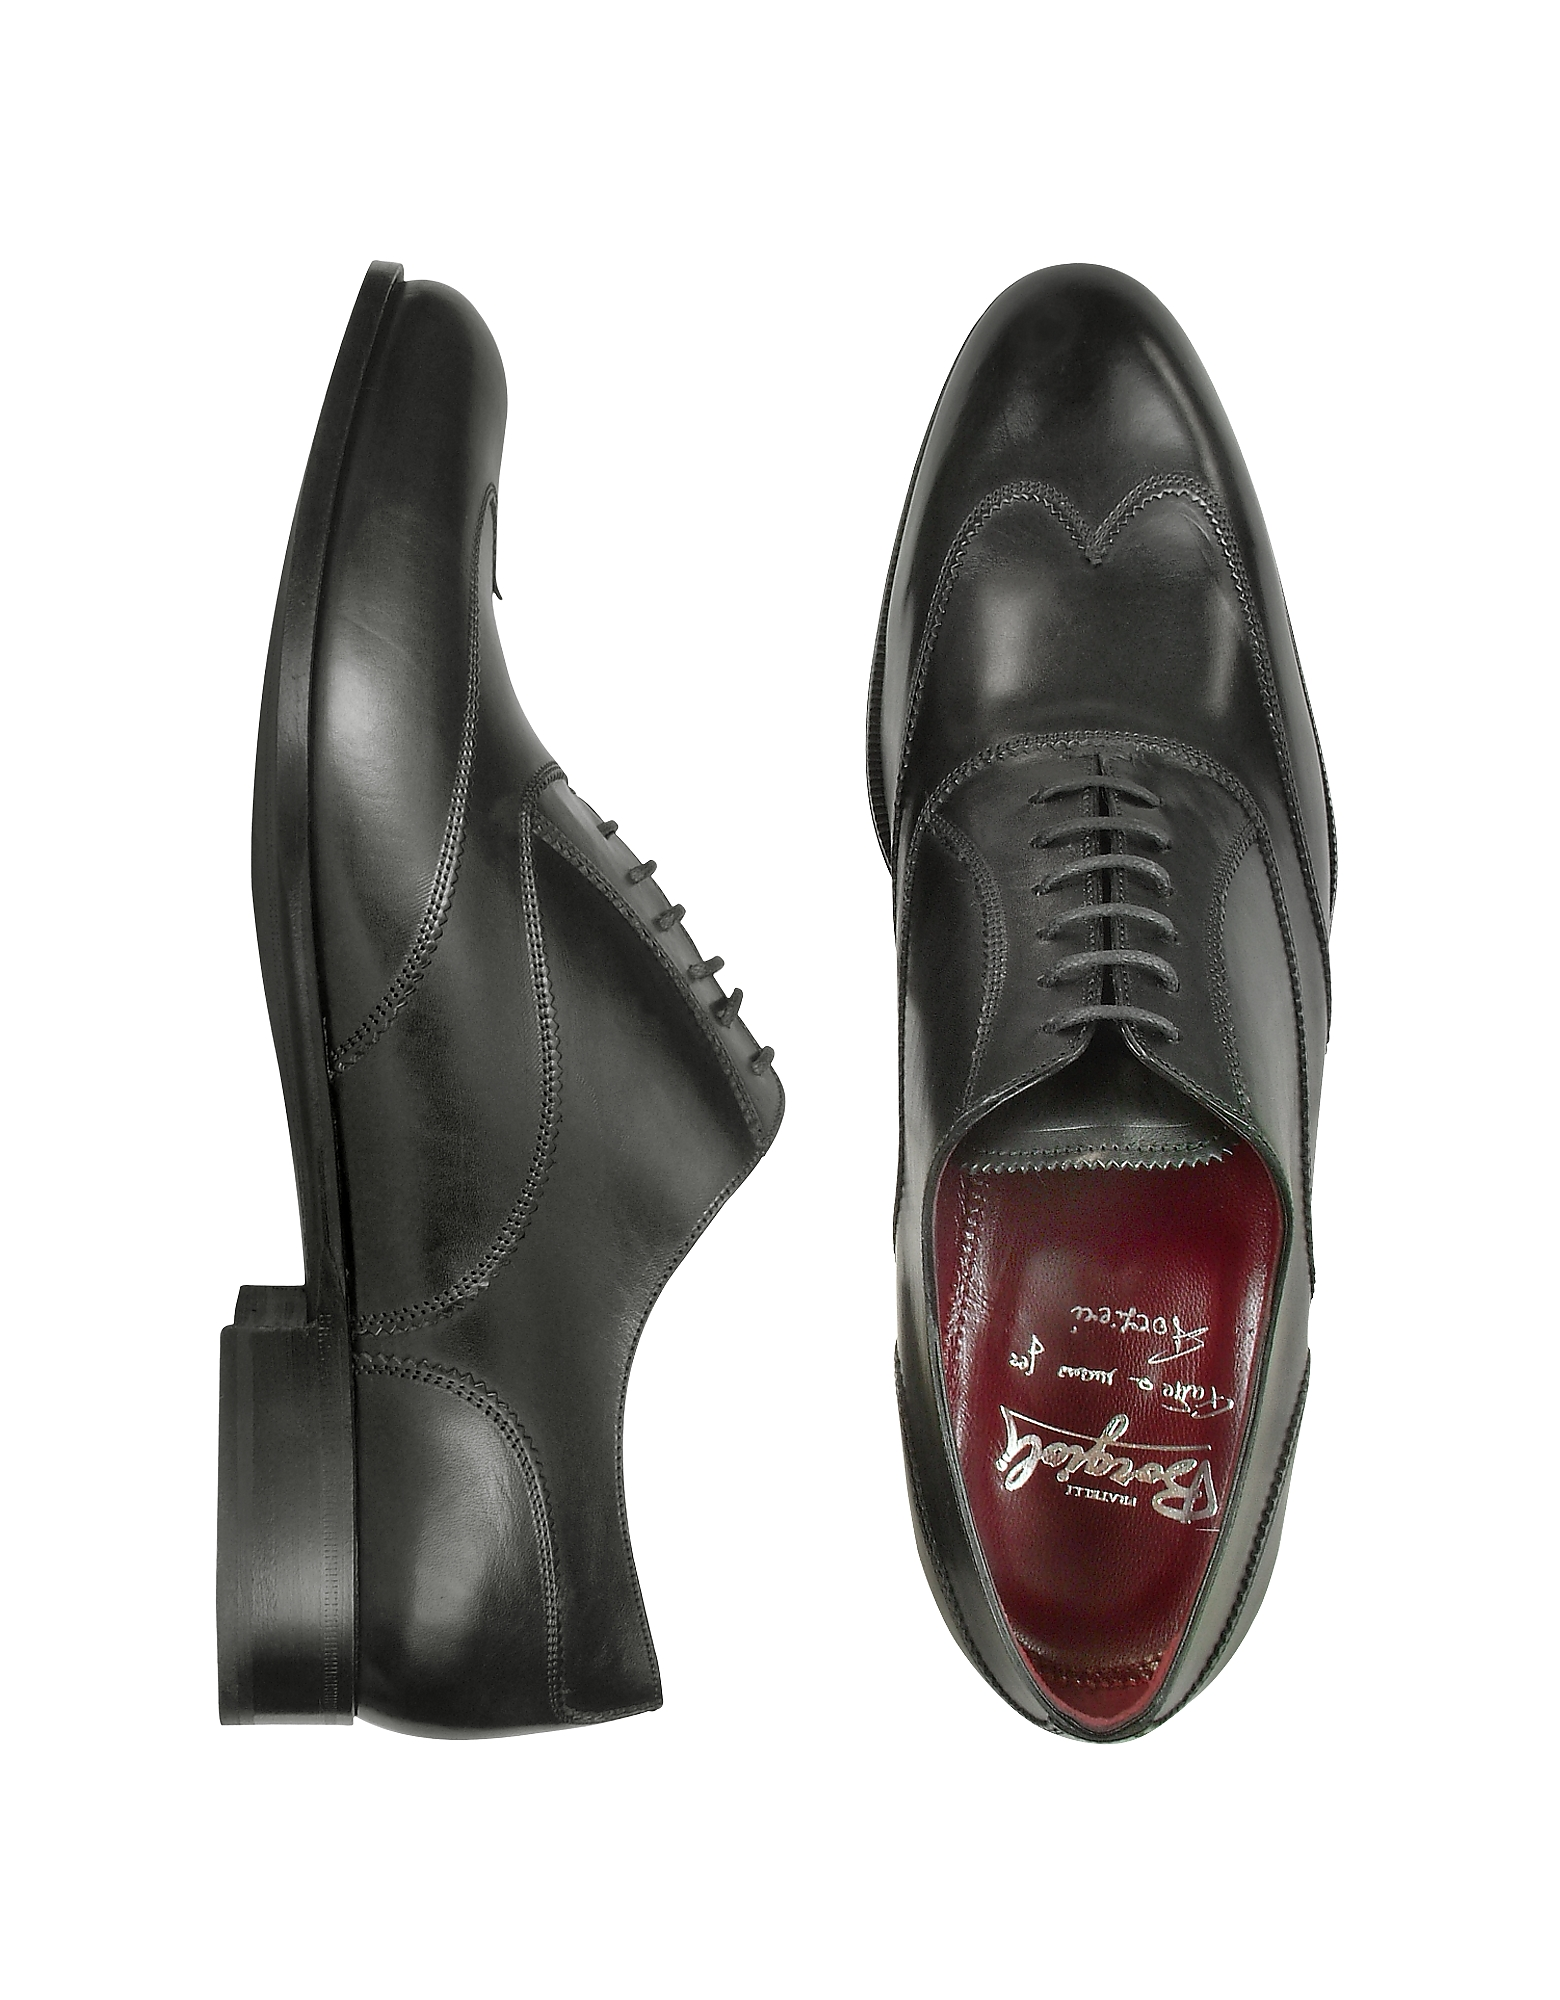 Fratelli Borgioli Shoes, Handmade Black Italian Leather Wingtip Oxford Shoes